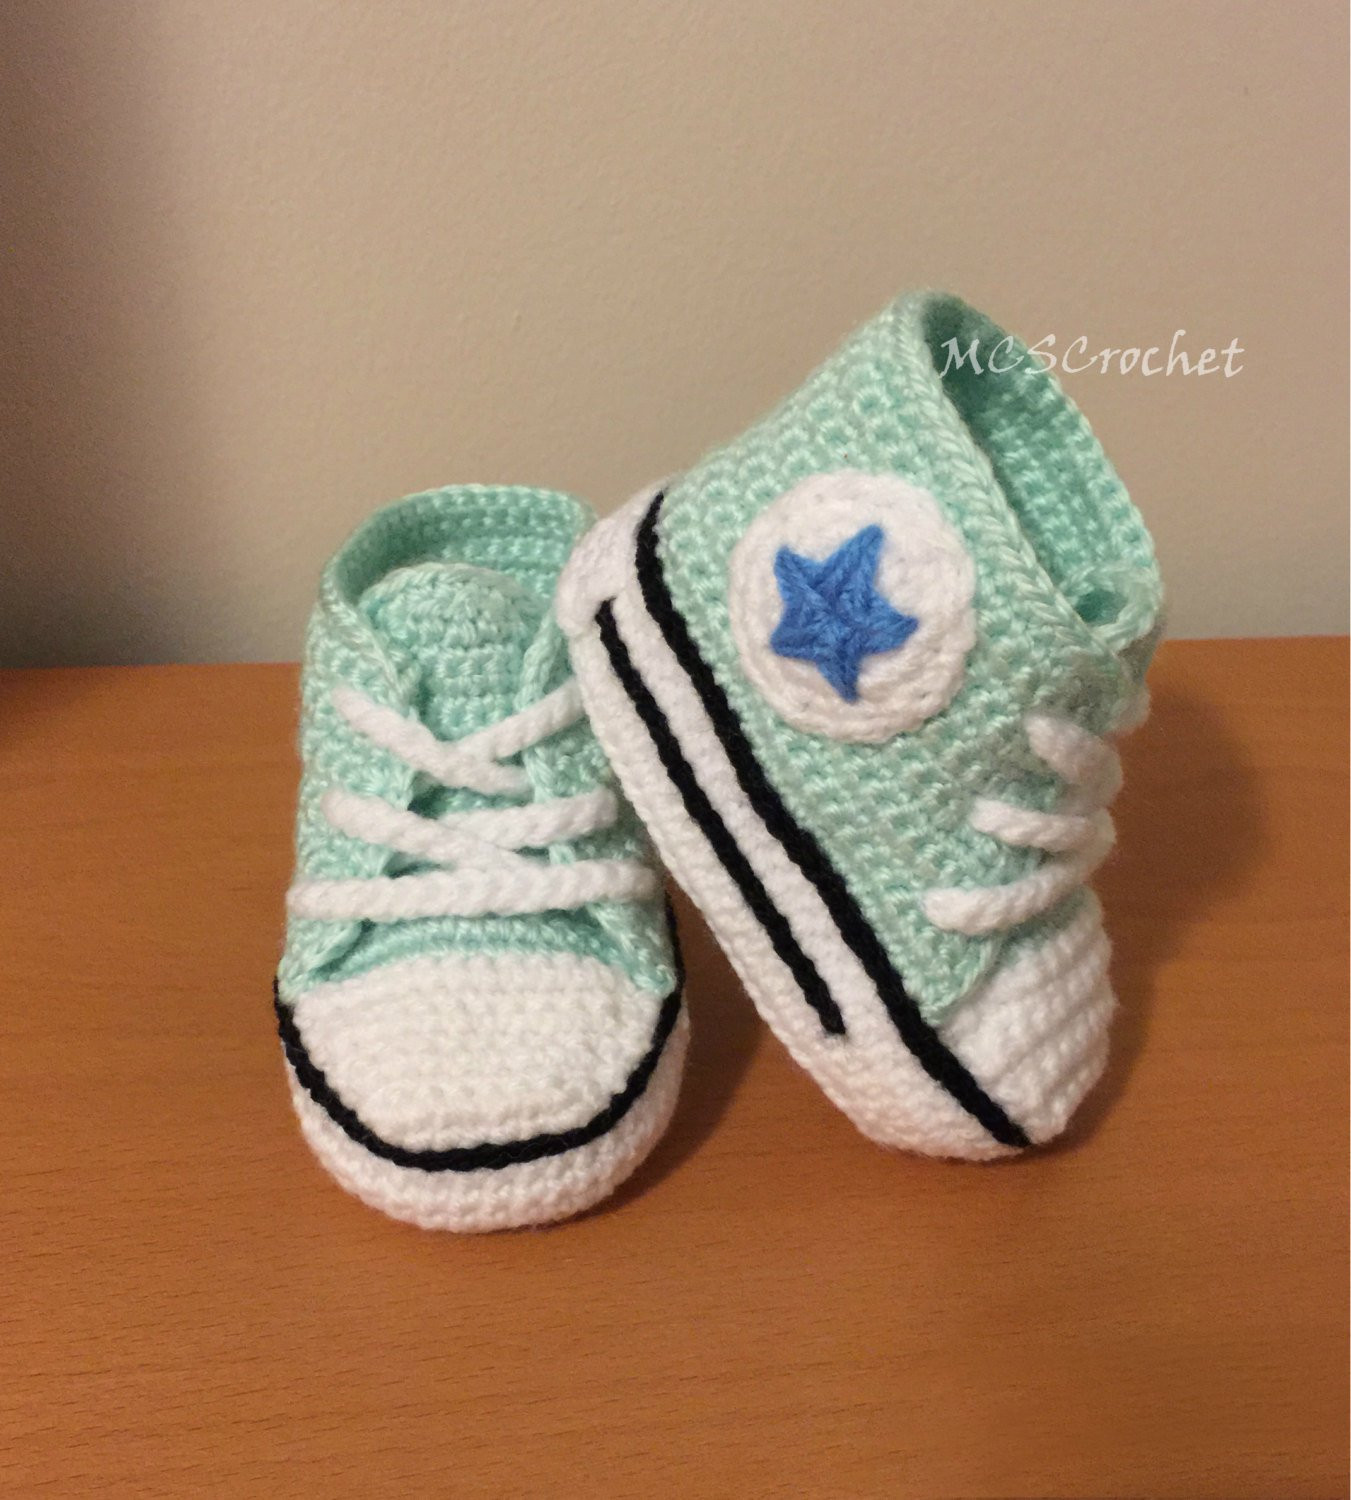 Free Crochet Patterns for Baby Shoes Luxury Crochet Baby Nike Shoes Free Pattern Of Wonderful 50 Photos Free Crochet Patterns for Baby Shoes